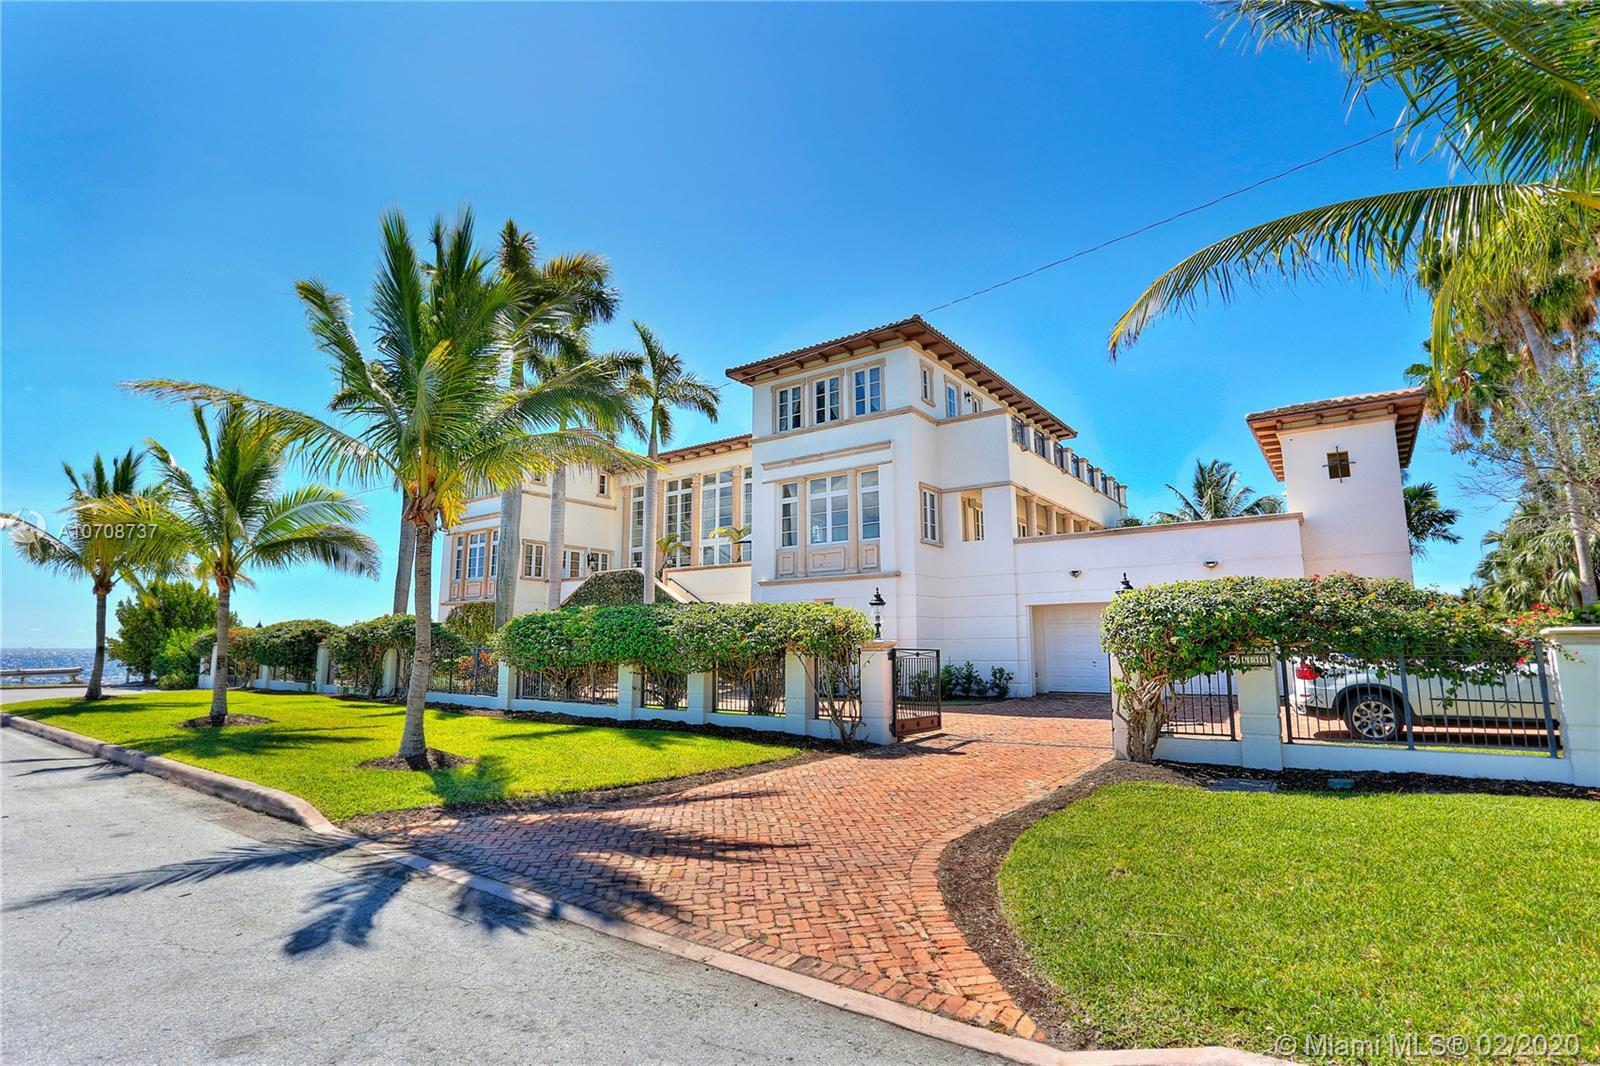 650 Lugo Ave, one of homes for sale in Kendall